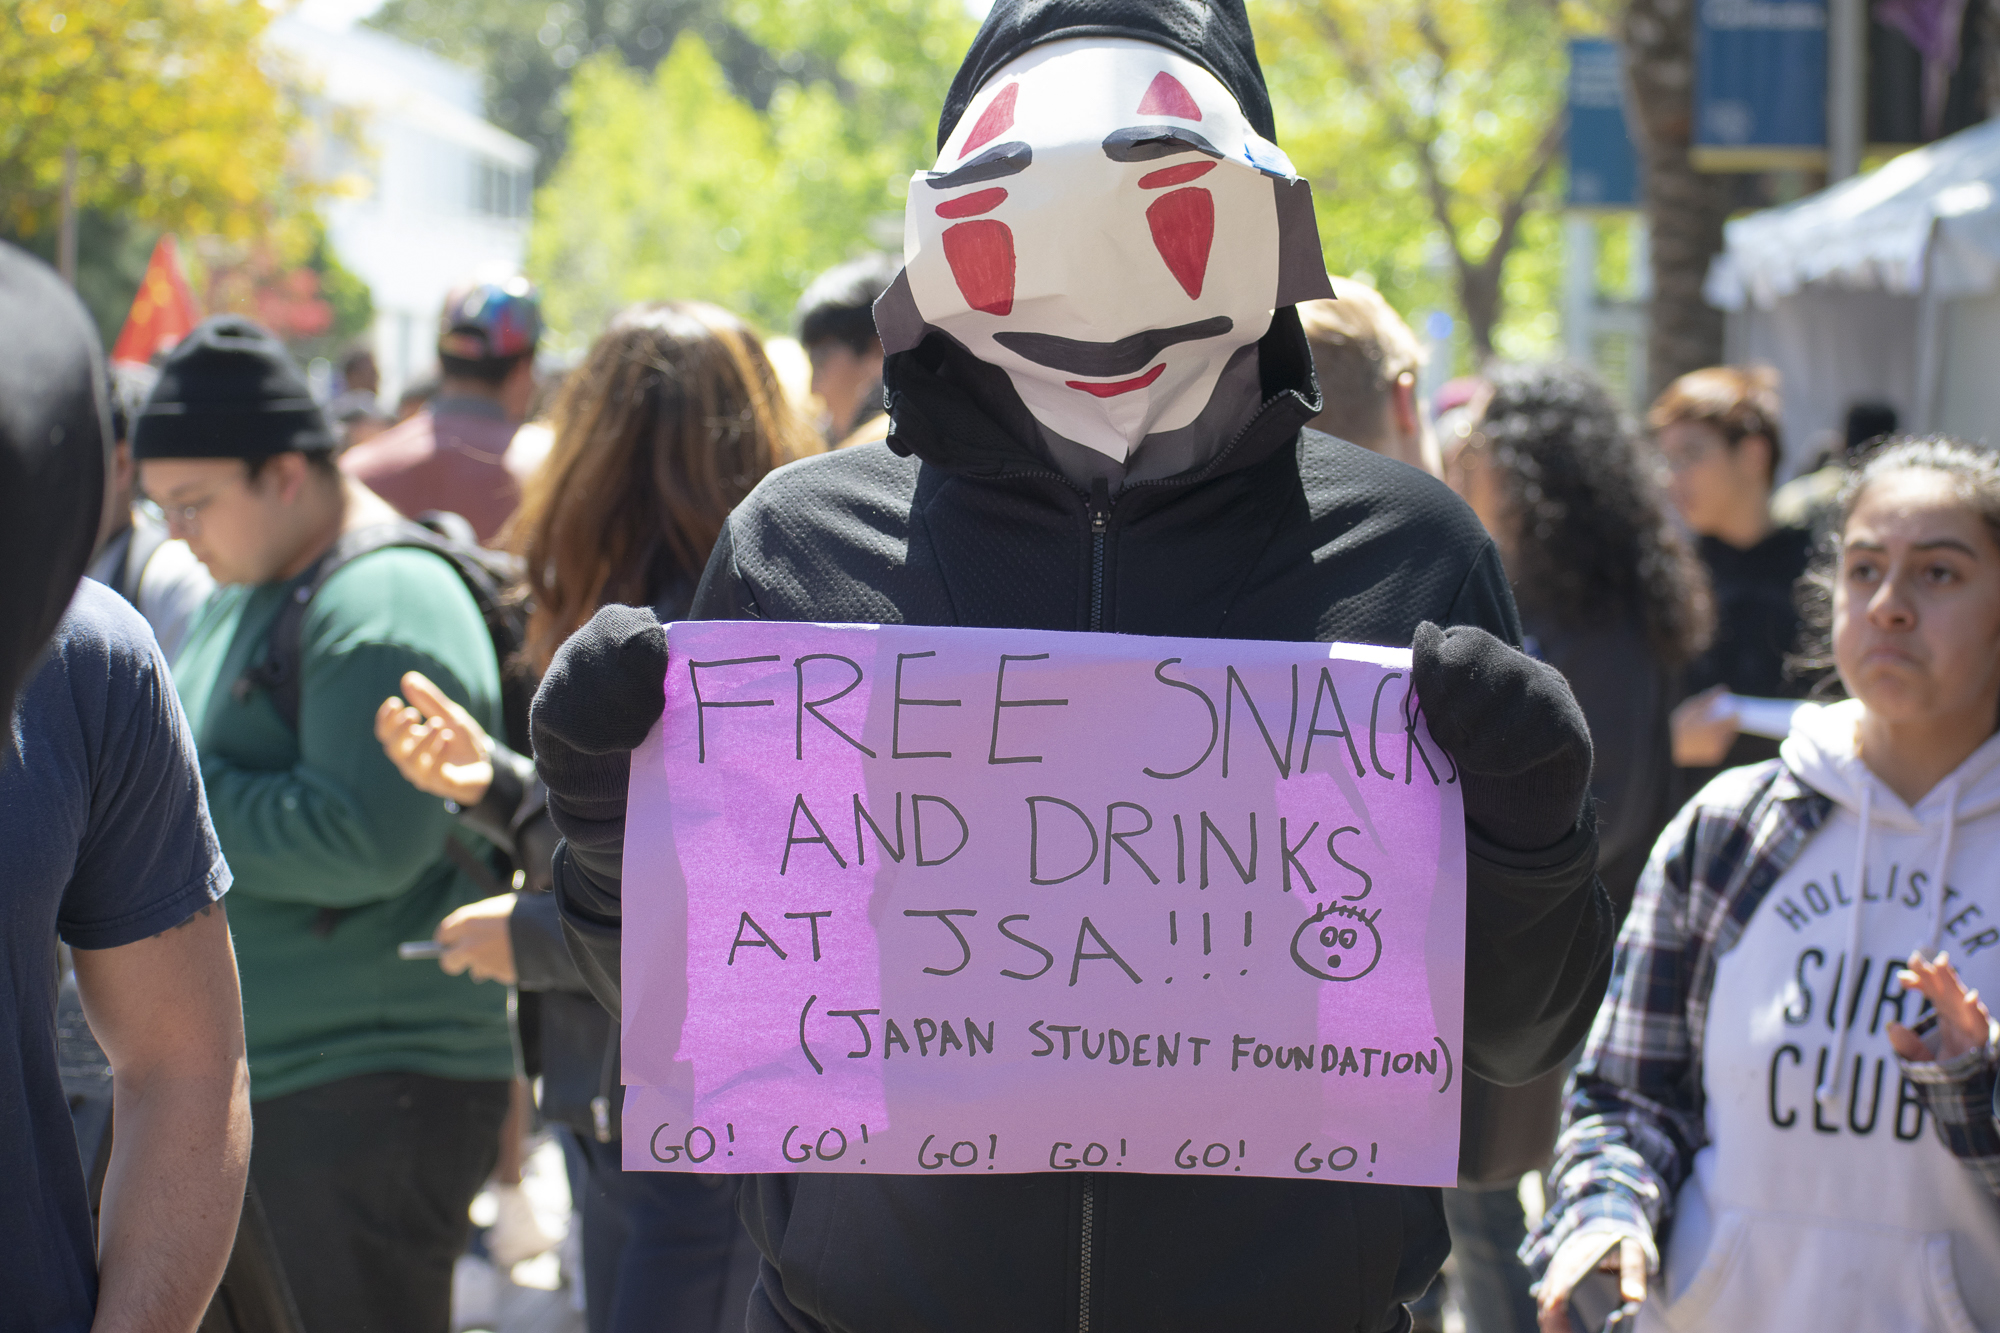 A student from the Japanese Student Association advertises their booth as they walk through the quad of Santa Monica College during Club Row on Thursday, April 26, 2018 in Santa Monica, California. With over 60 clubs in attendance, the day is meant to encourage clubs to showcase what they've been doing over the semester for students. (Ethan Lauren/Corsair Photo)